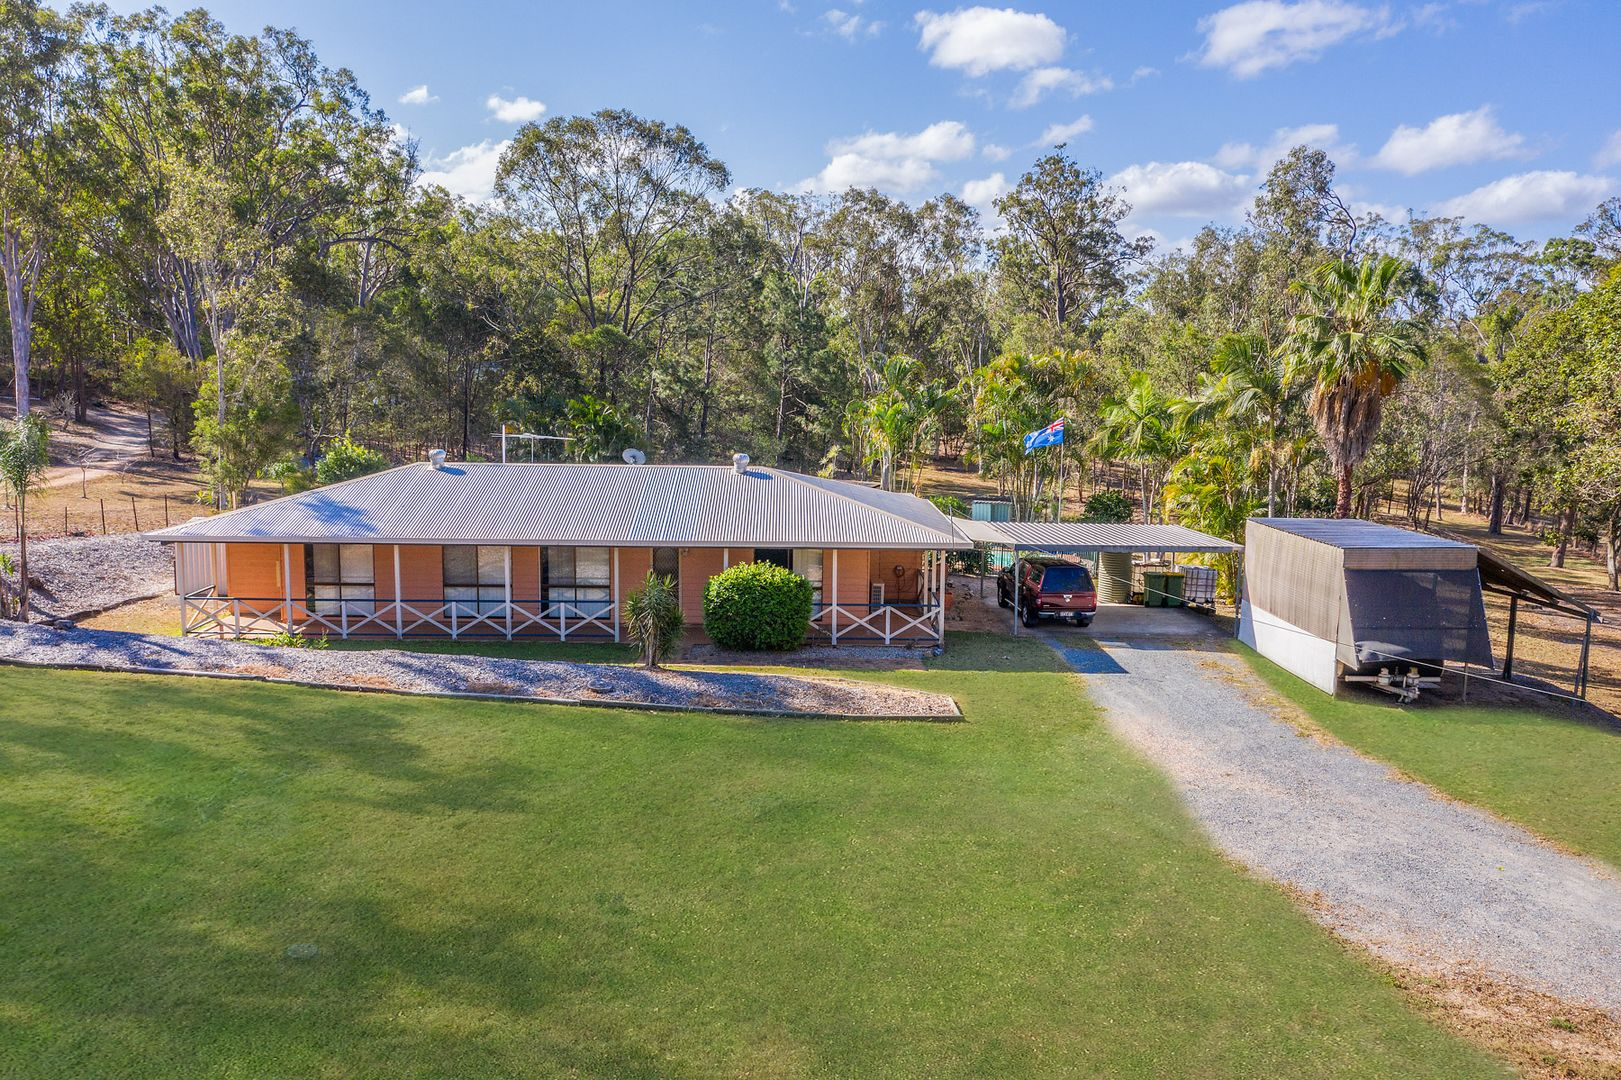 30-34 Sheree Court, Buccan QLD 4207, Image 0